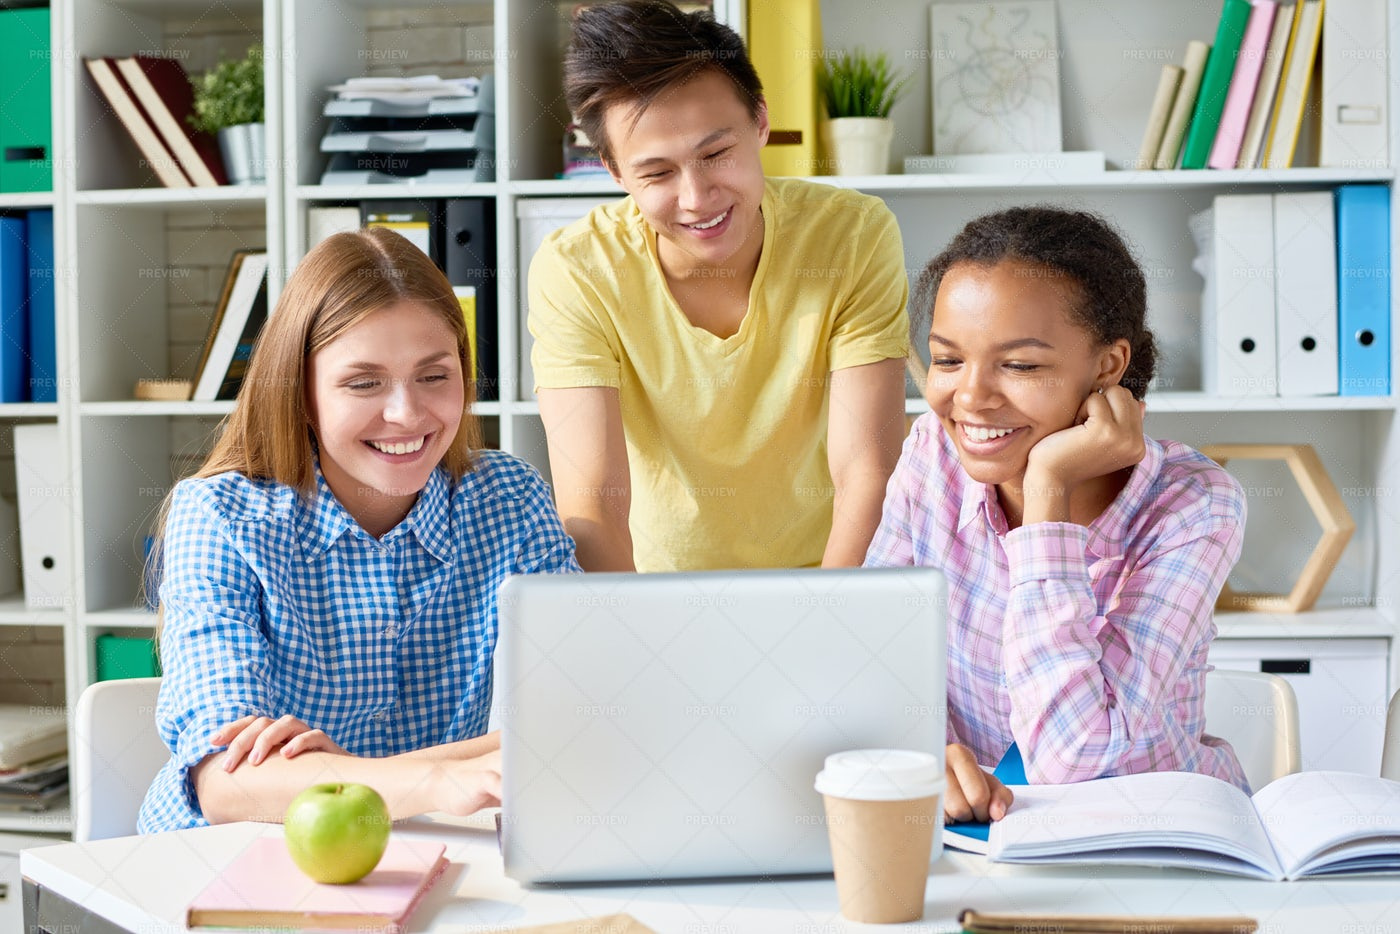 Study Session In College: Stock Photos